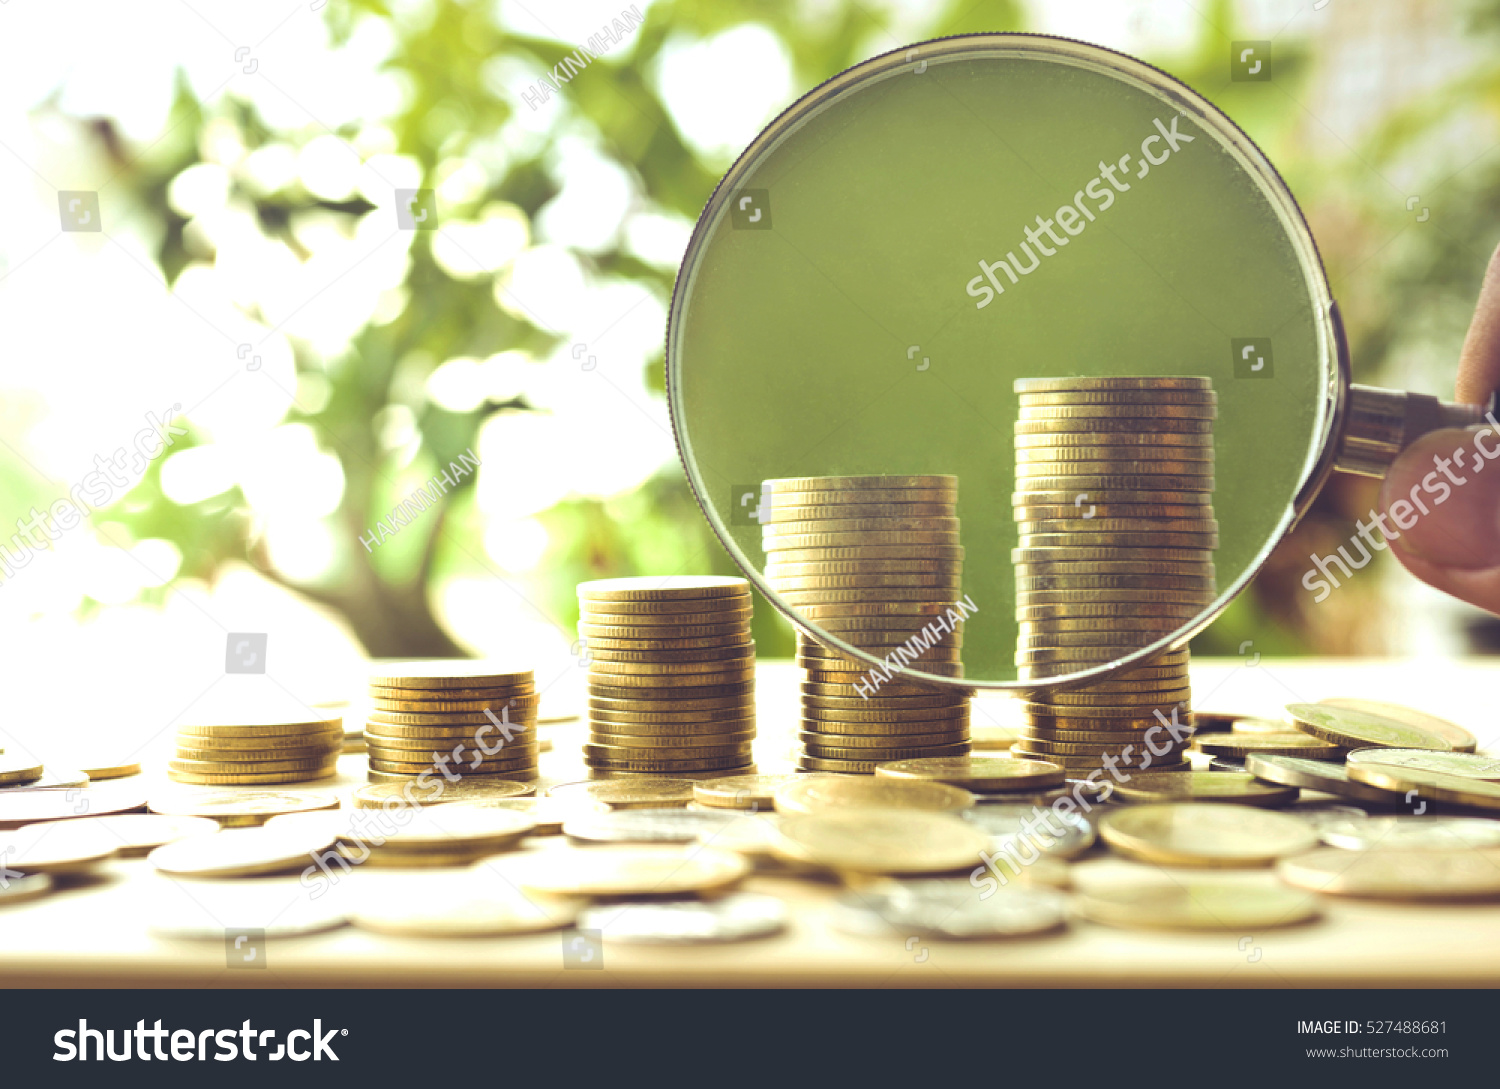 Hand Magnifying Glass Money Coins Stack Stock Photo - Artist creates art power sunlight magnifying glass